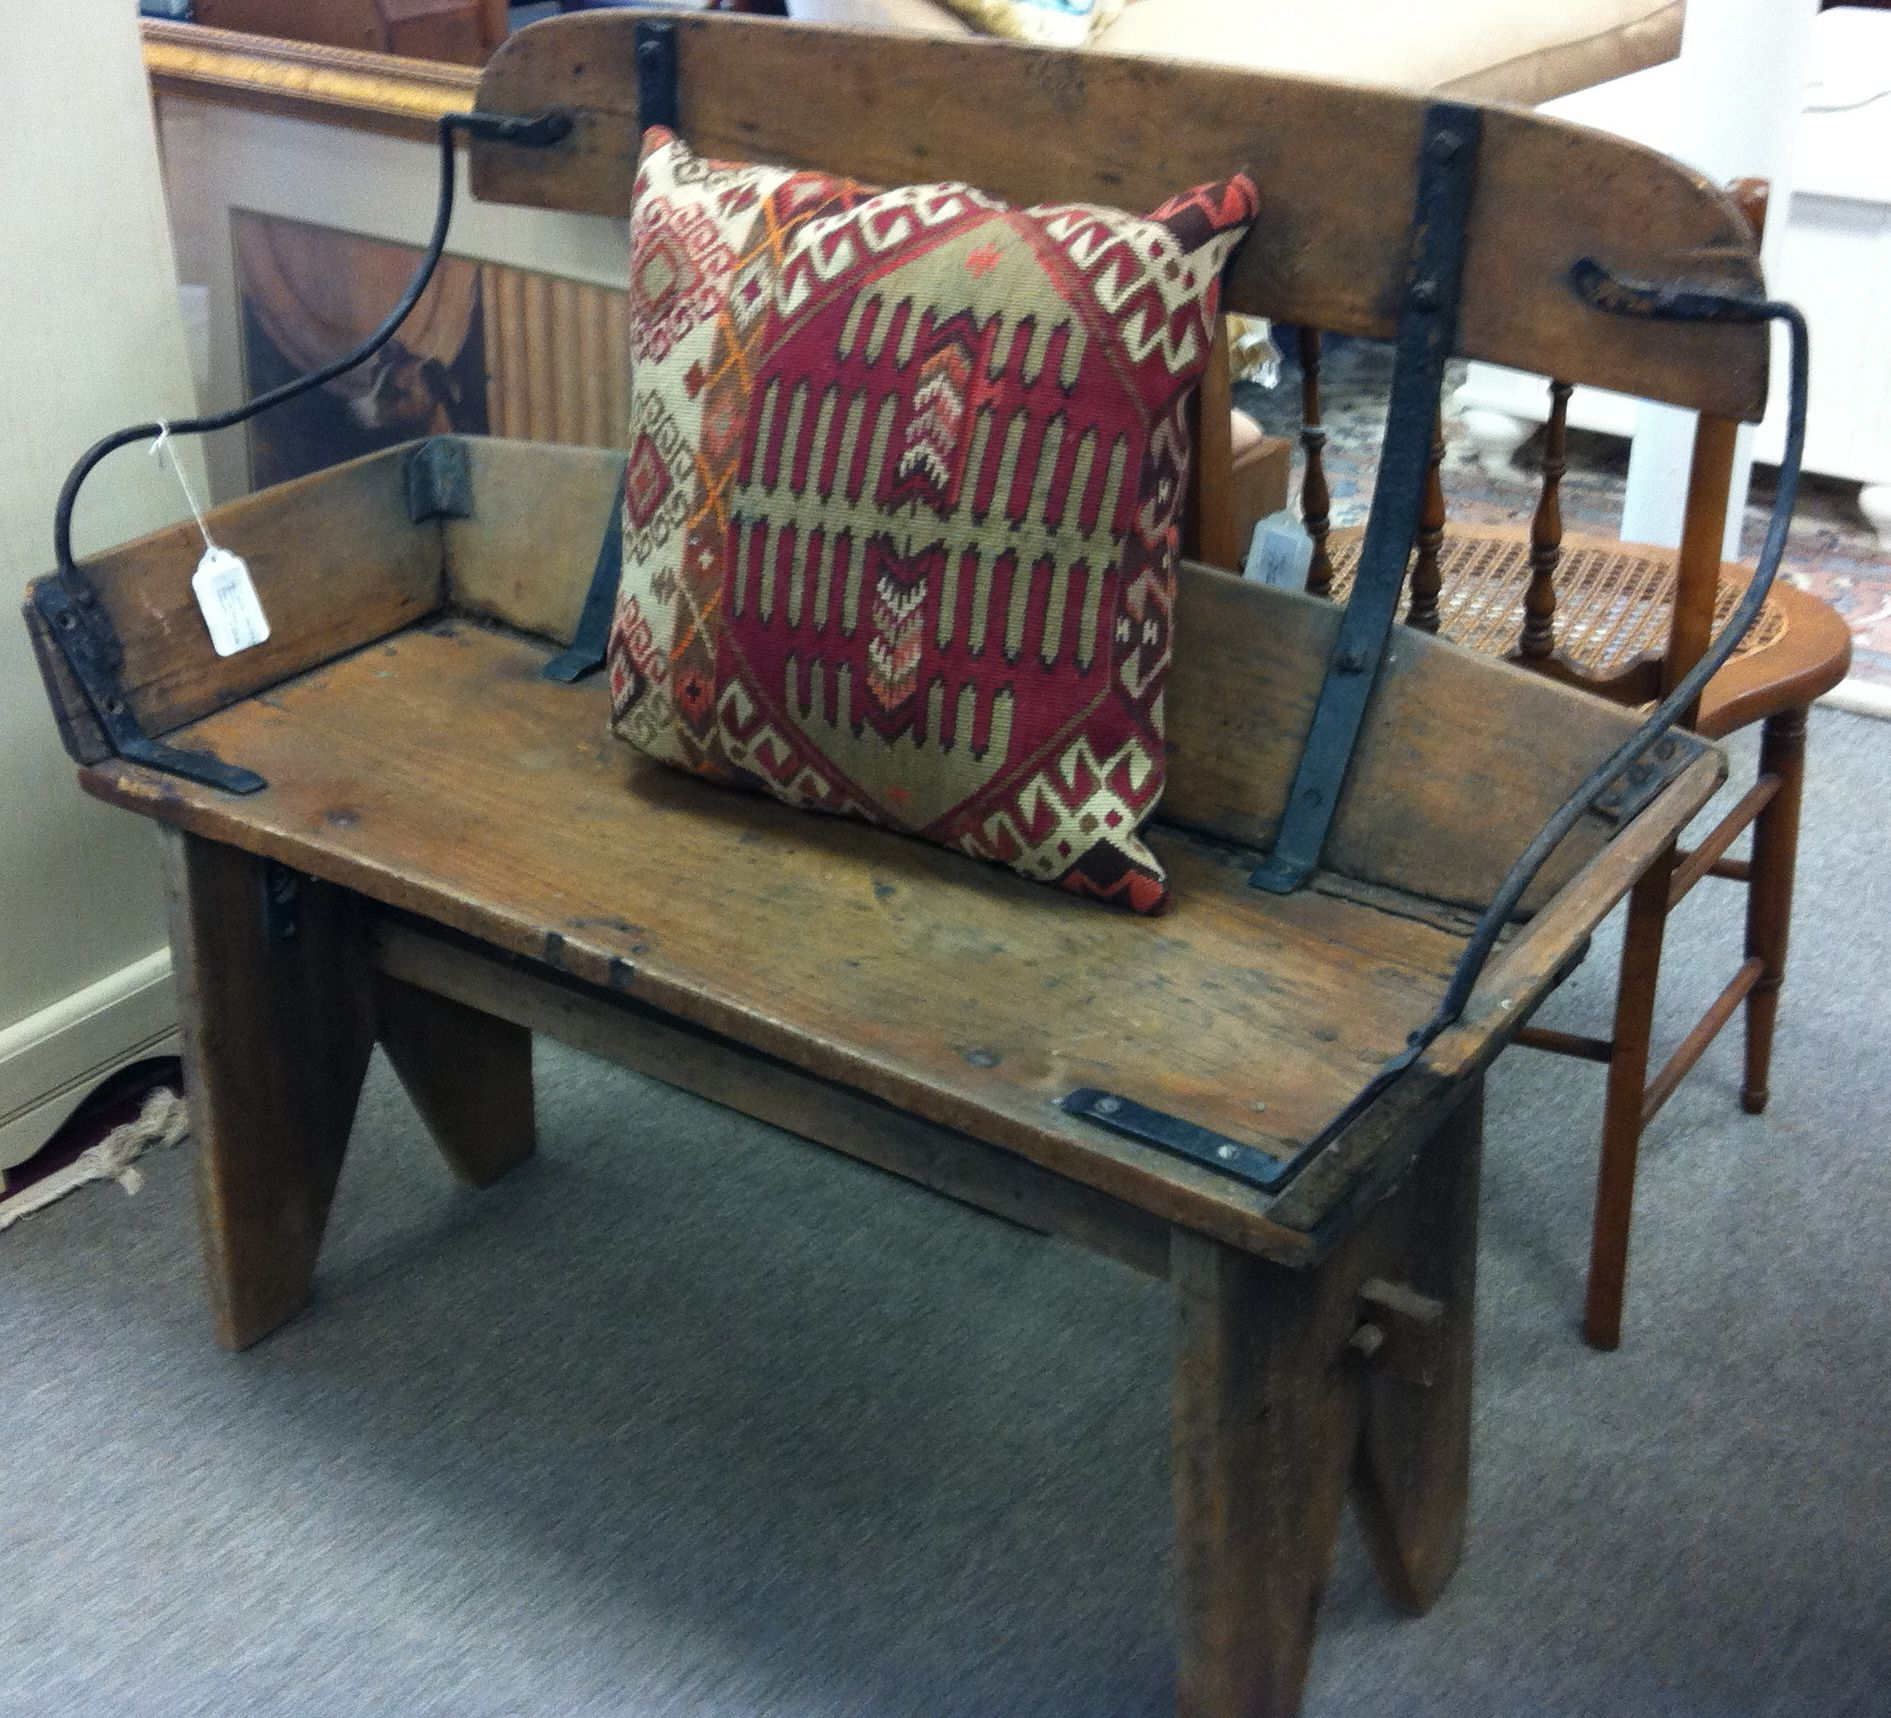 we absolutely love this antique buggy bench